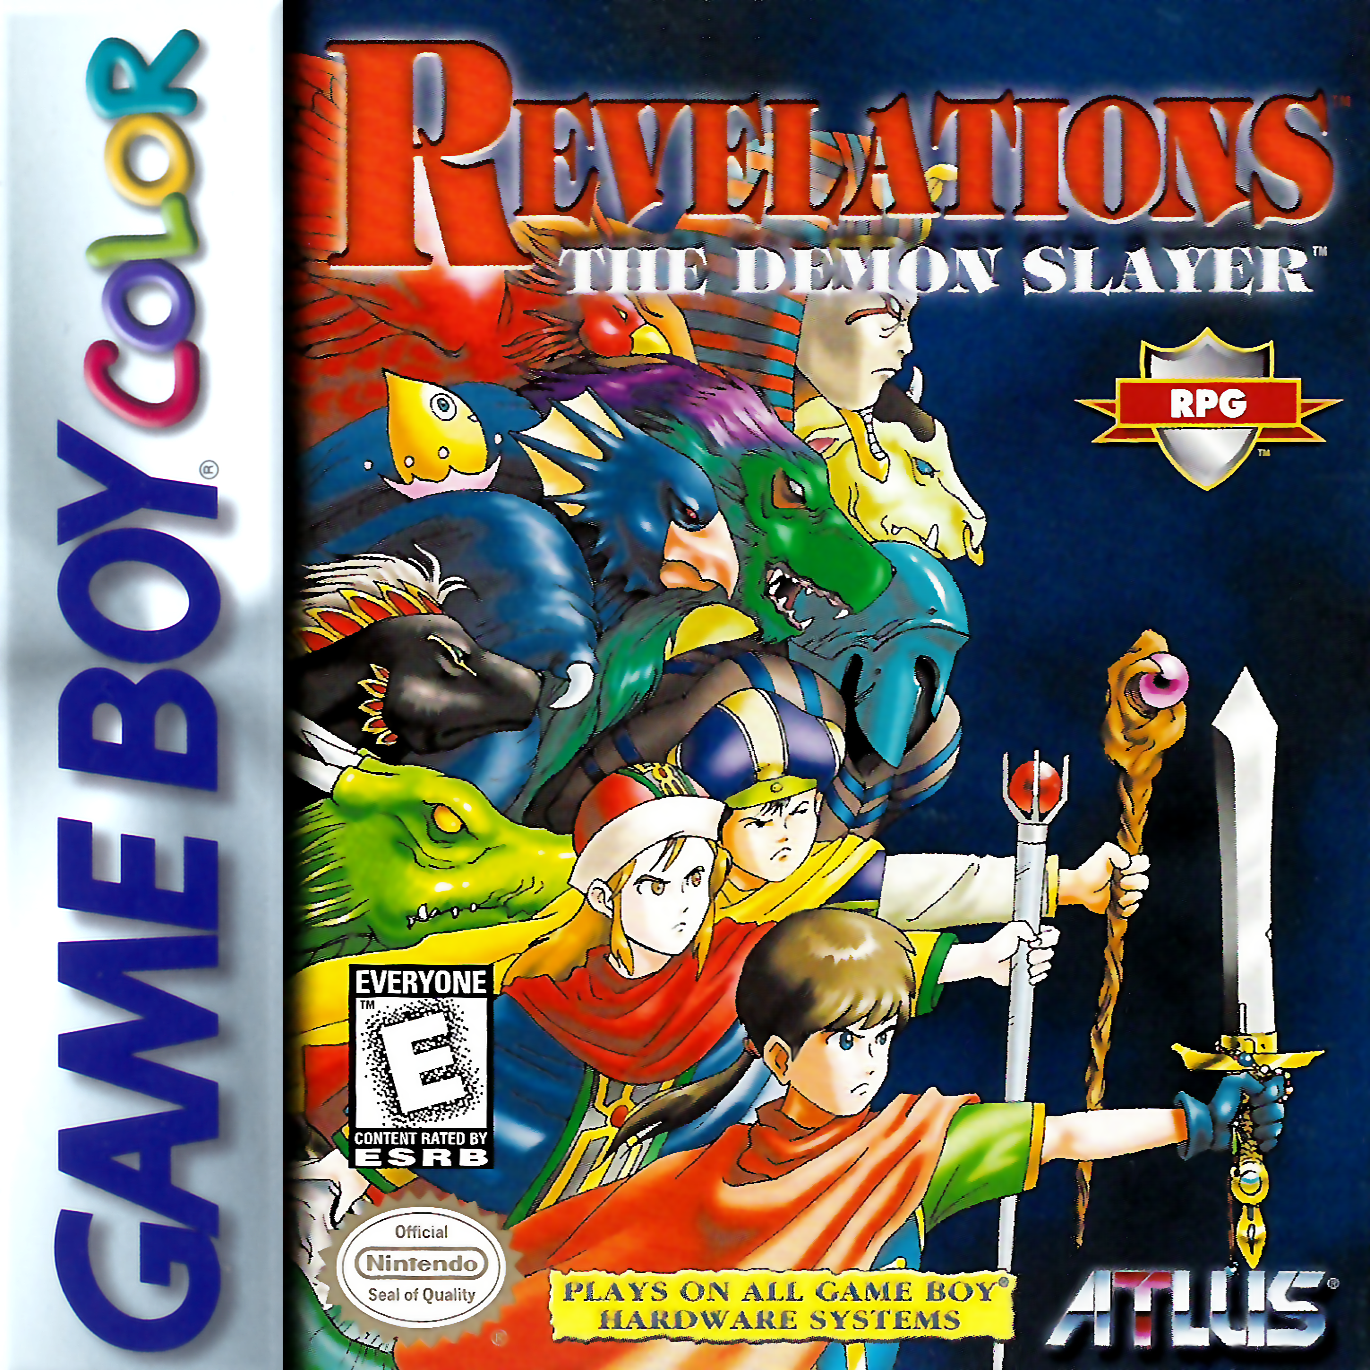 Game boy color online games - Play Revelations The Demon Slayer Nintendo Game Boy Color Online